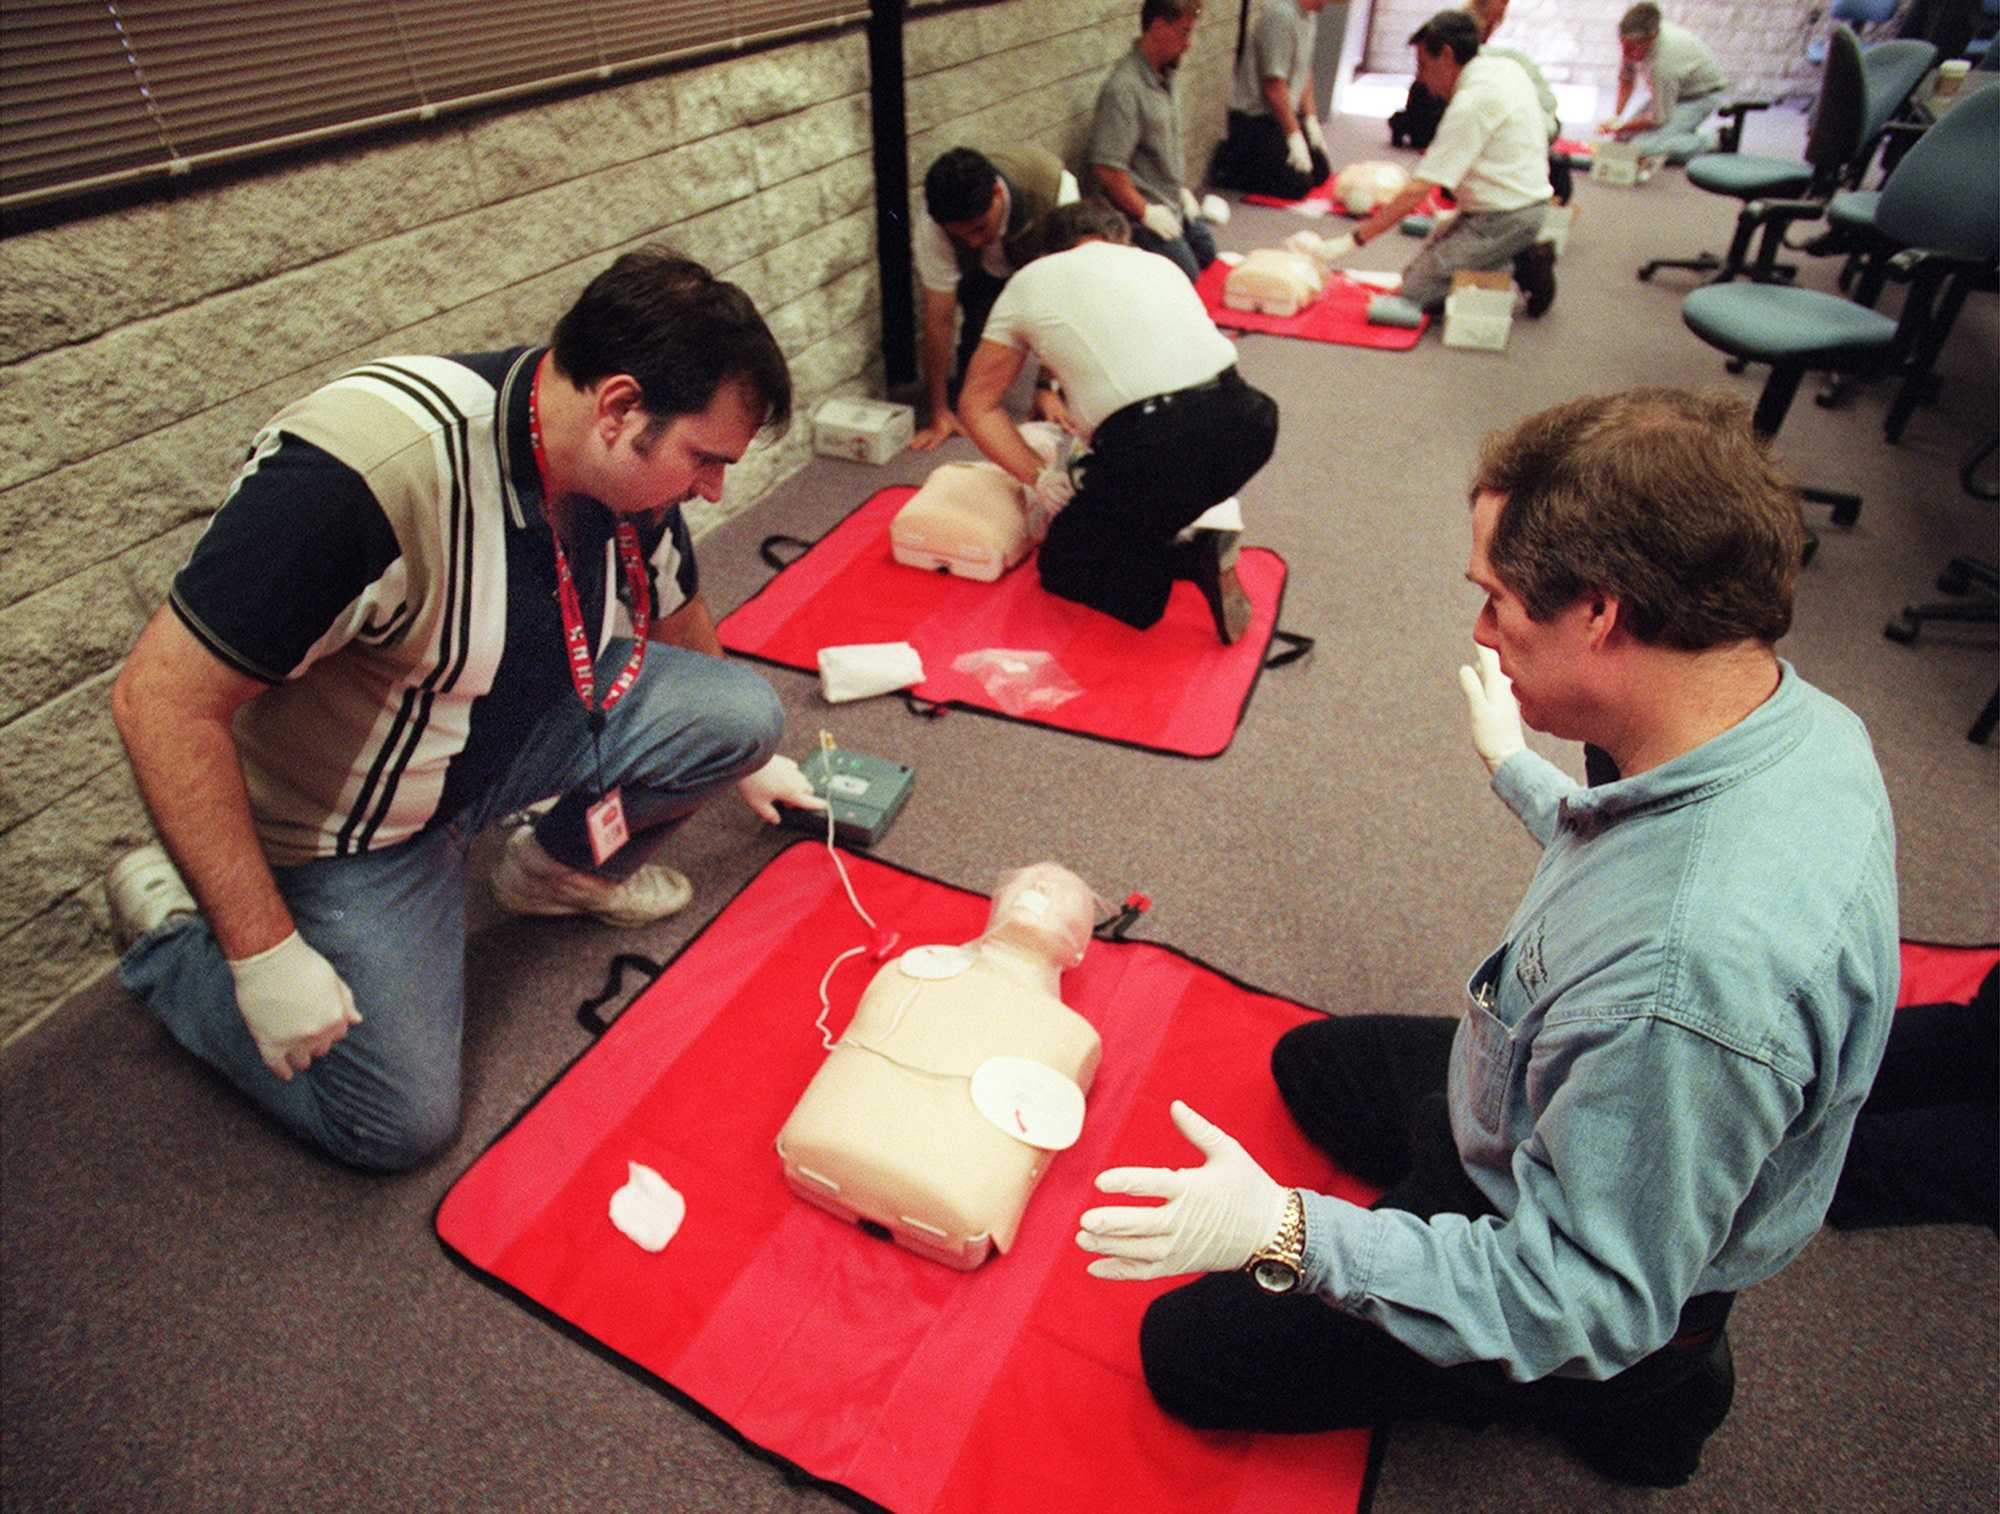 PHOTOGRAPH BY BRUCE C. STRONG/ORANGE COUNTY REGISTER (KRT163 - April 27) Bill Bryant, left, and Bob LaTouche practice heart first aid with an automatic external defibrillator, or AED, during a special class taught by the American Red Cross for employees of Newport Corporation in Irvine, California.